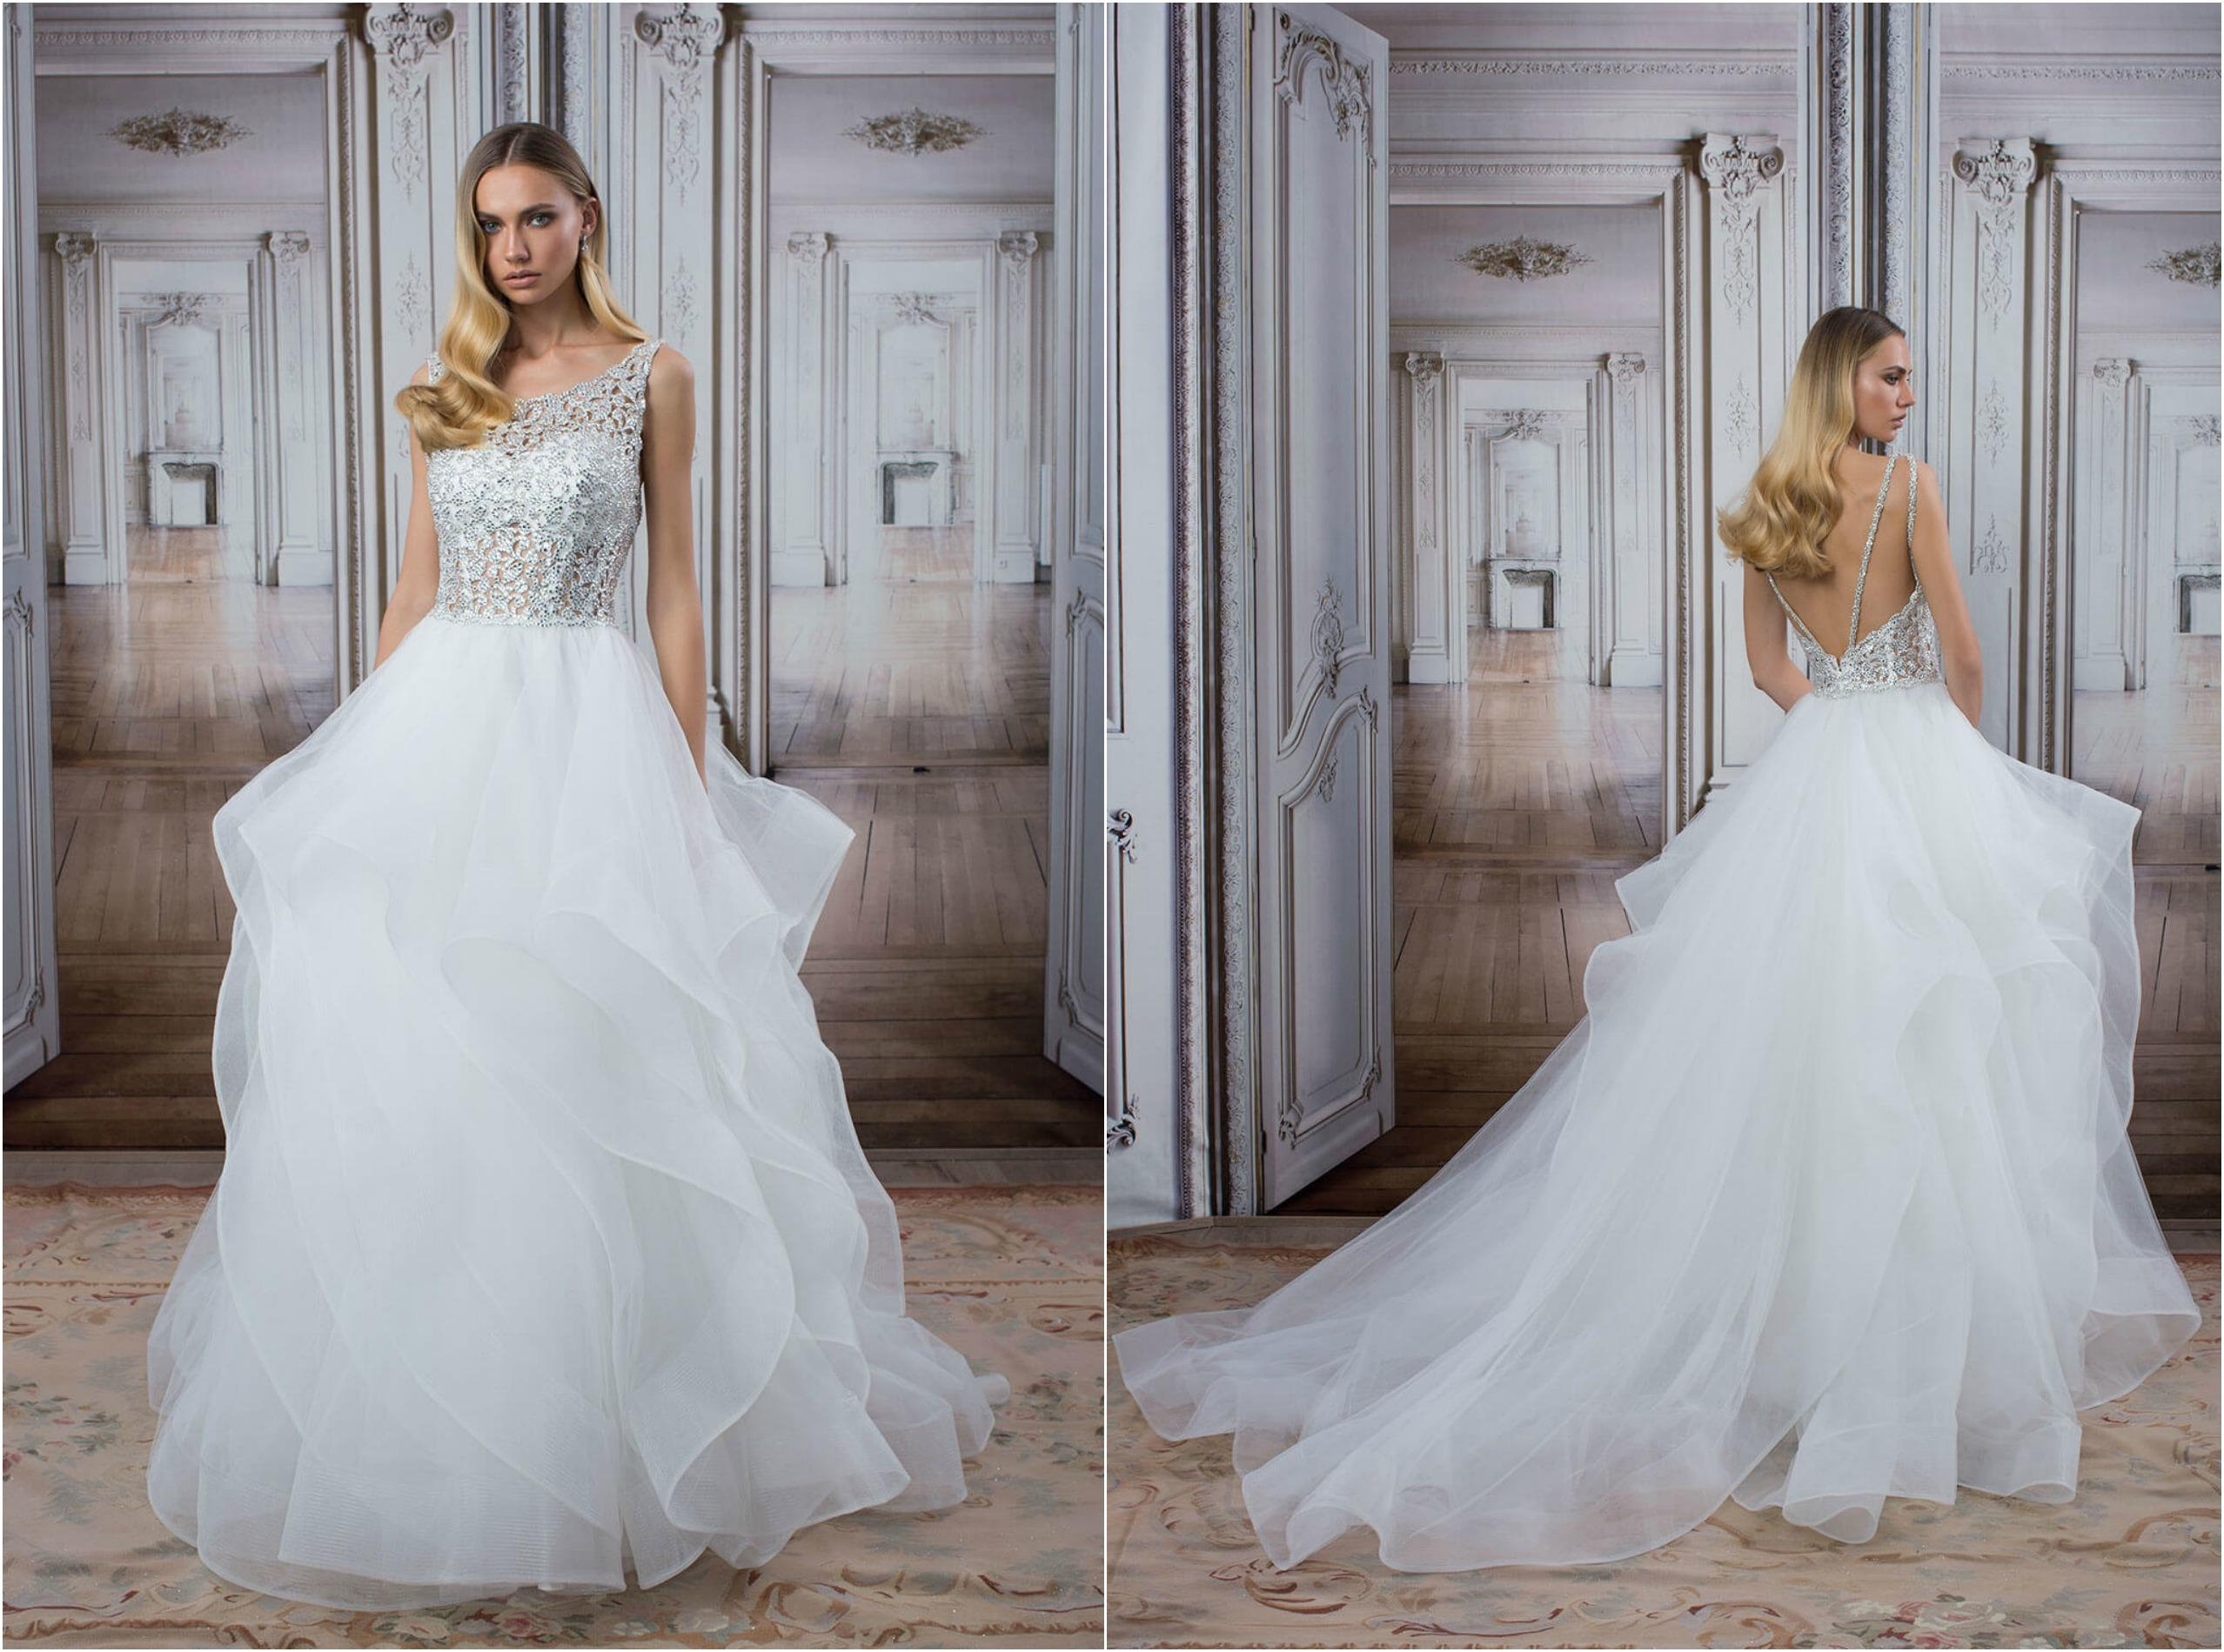 Pnina Tornai's 10 Most Blinged Out Gowns